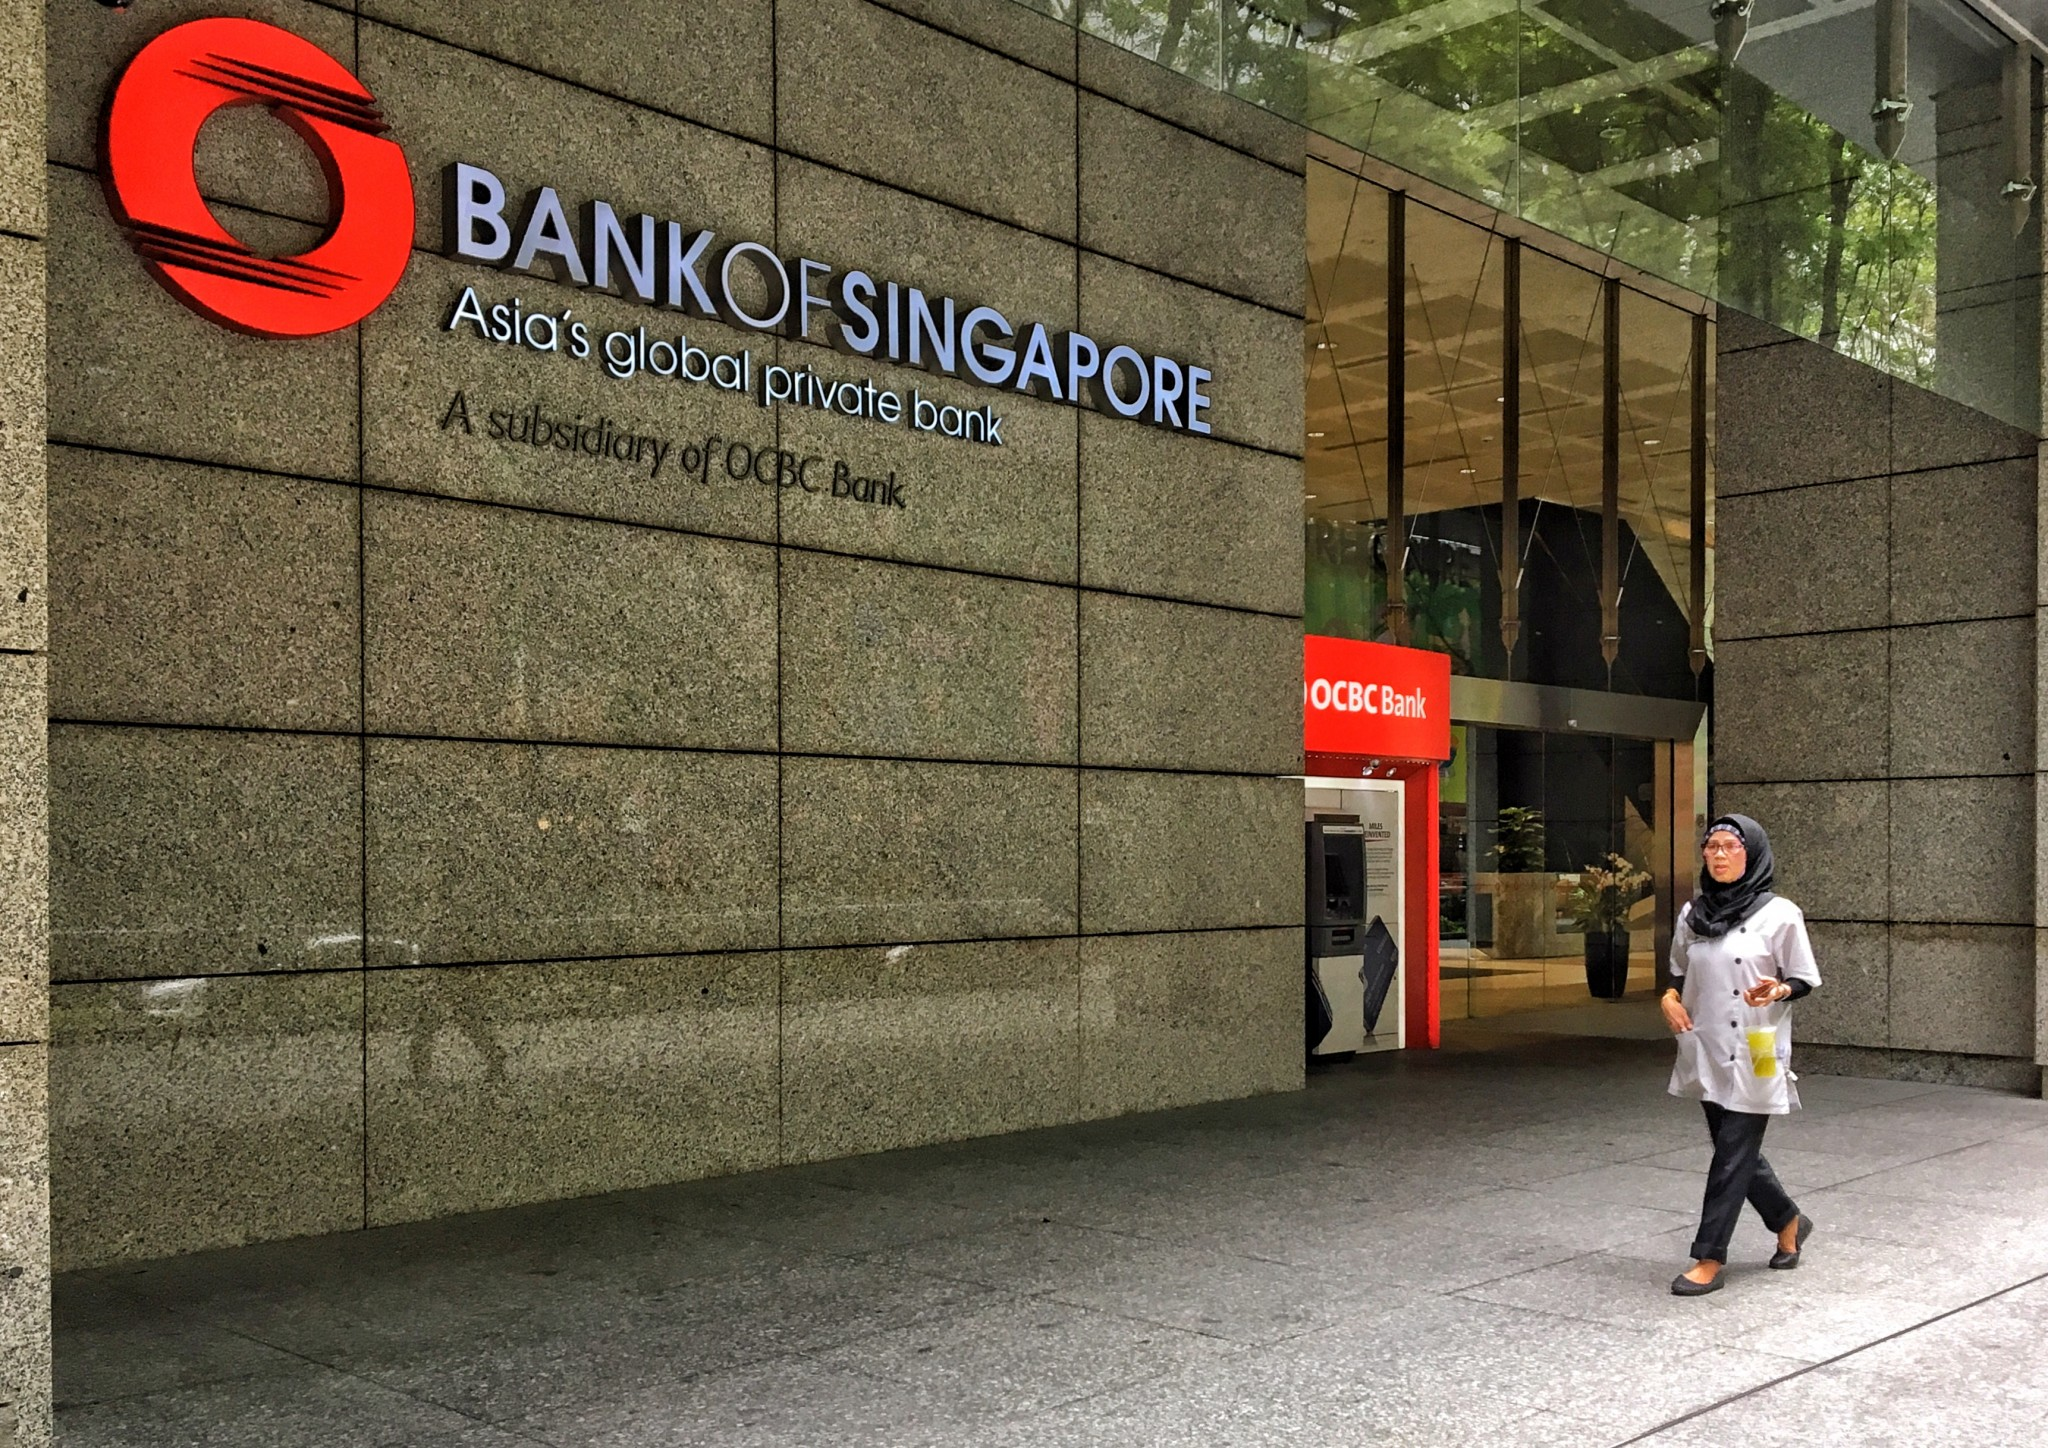 Bank of Singapore will hire relationship managers to cater to Non-Resident Indians (NRIs) and the rich people of the Arab world.